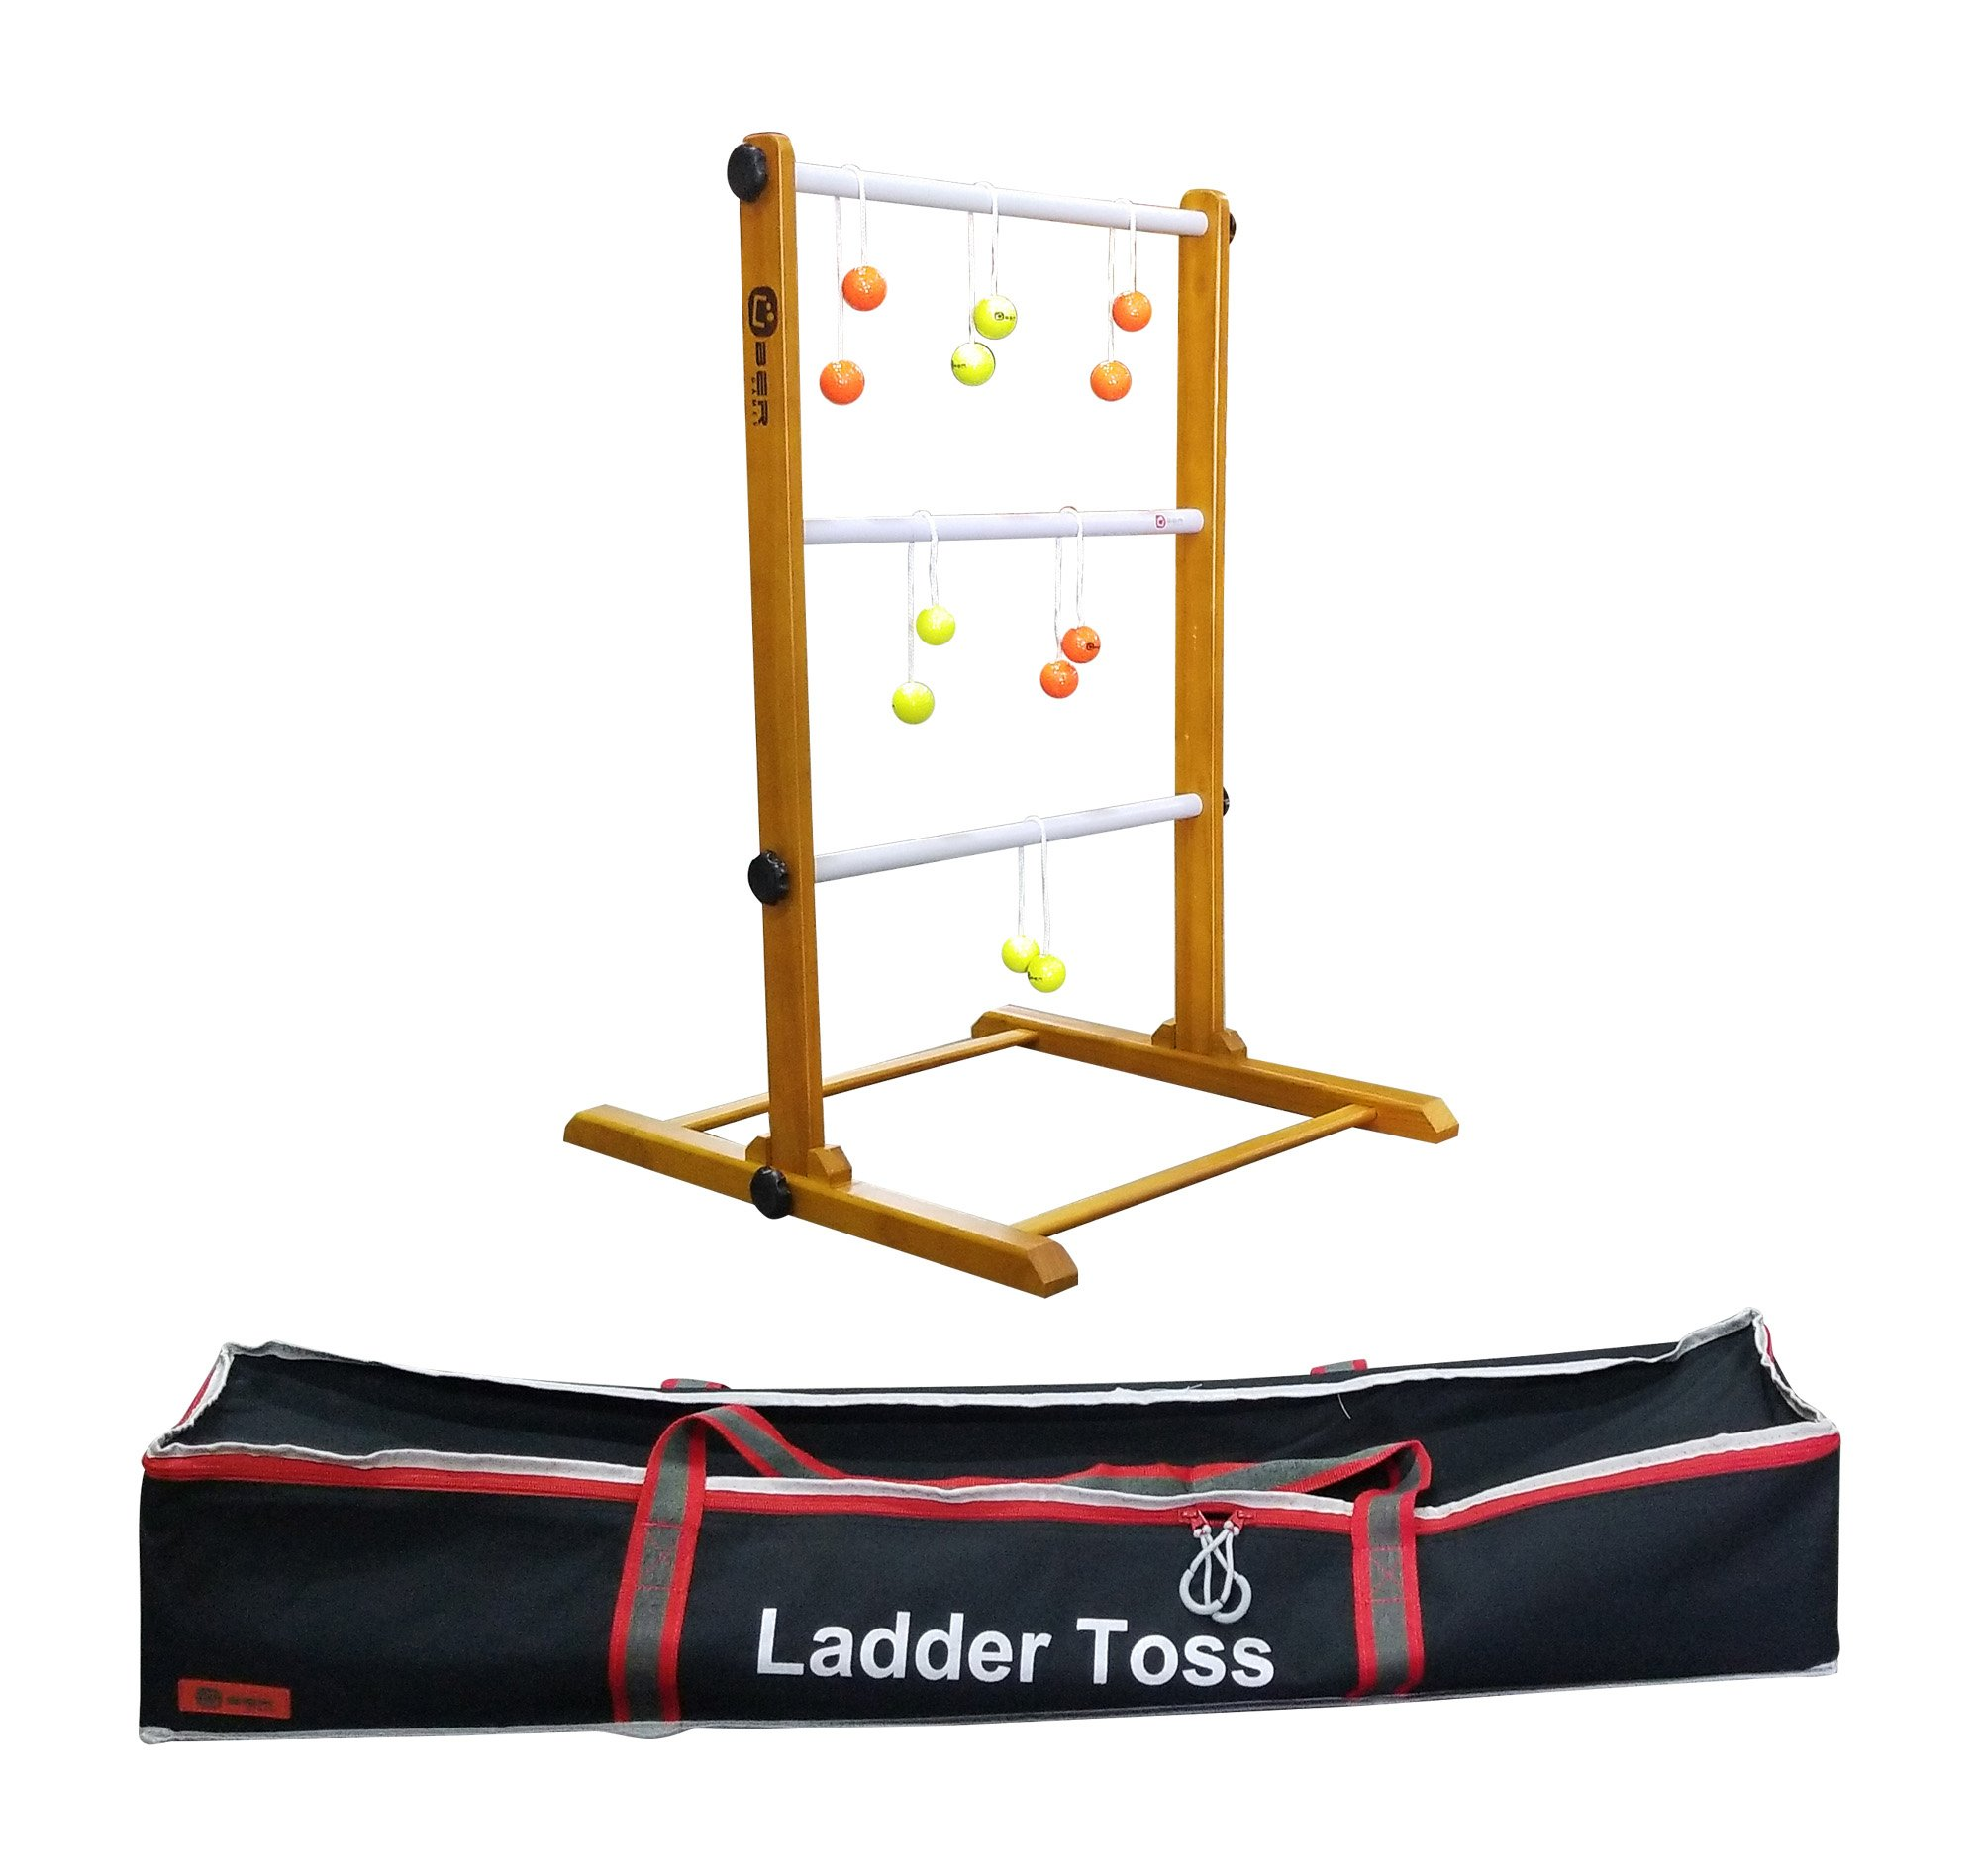 Uber Games Ladder Toss - Single Game - Yellow and Orange Bolas by Uber Games